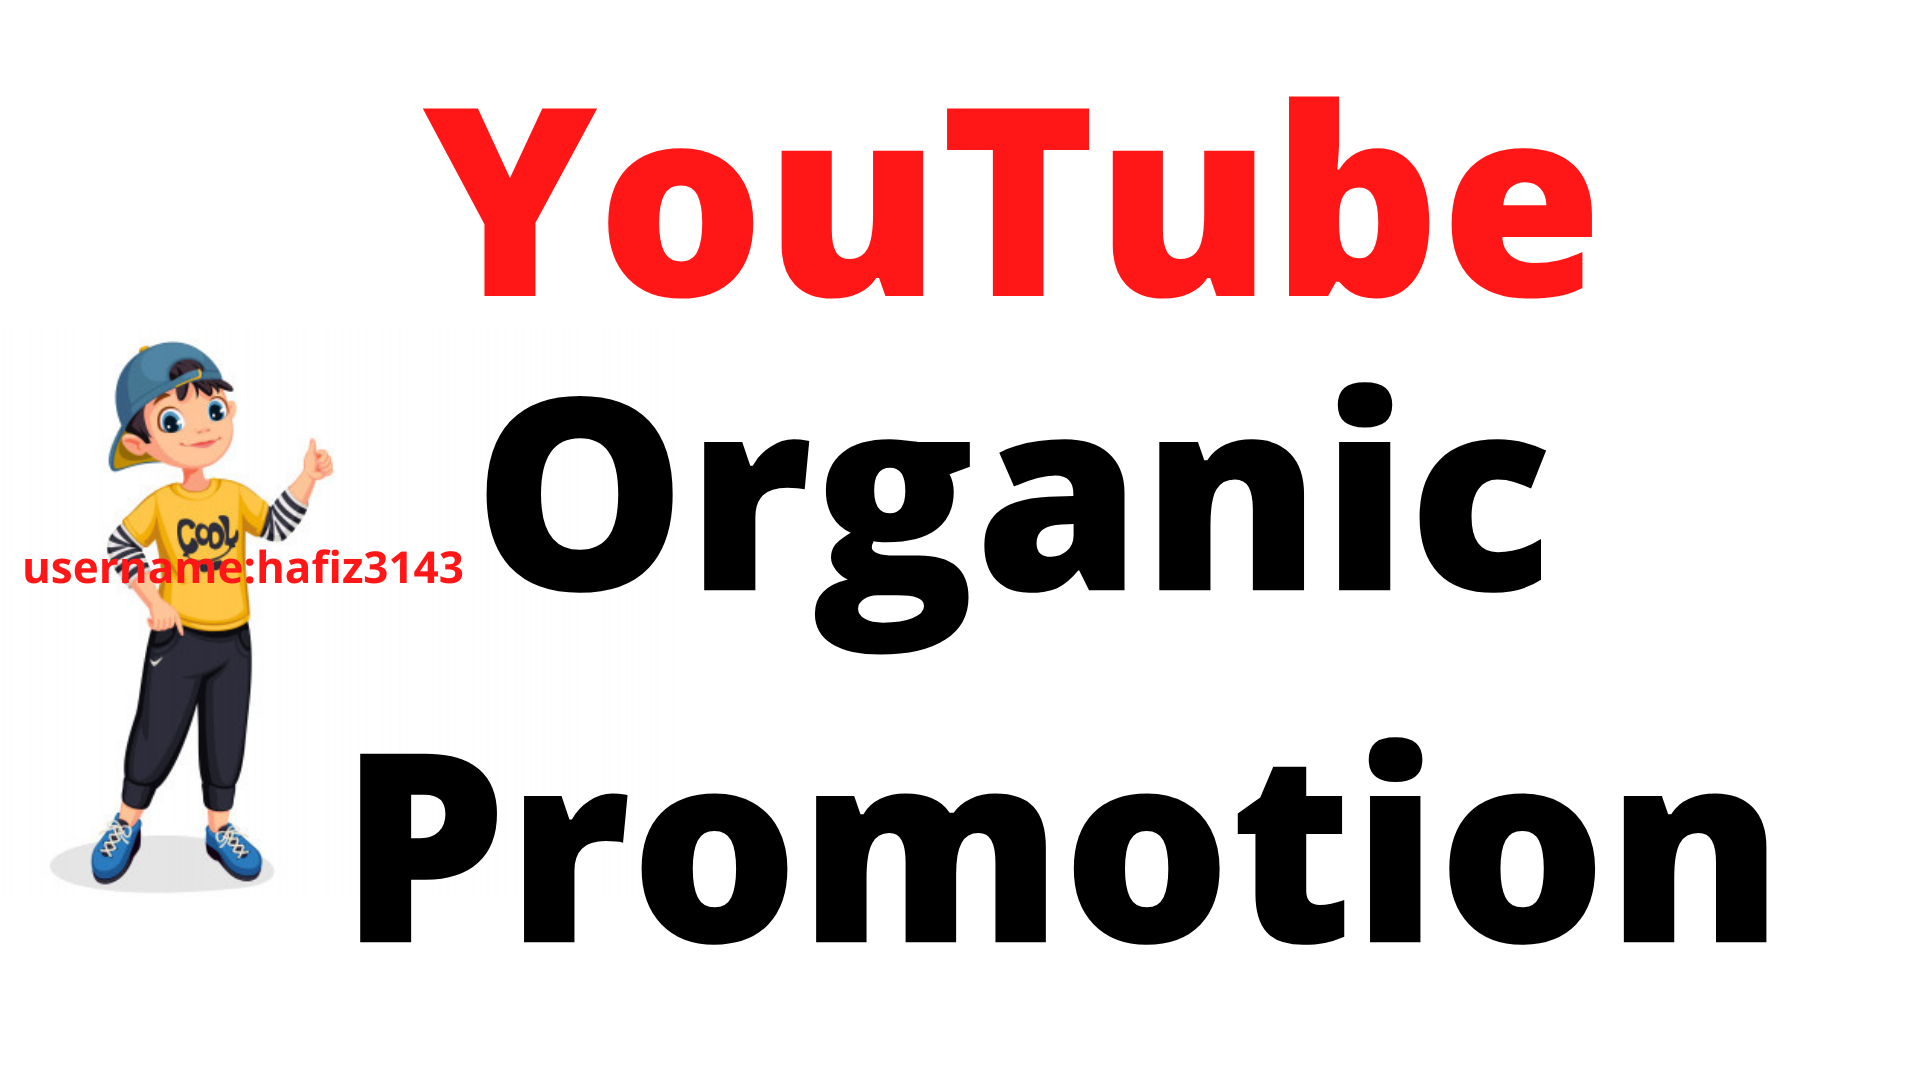 High Quality YouTube Stable Organic 5K Organic Promotion